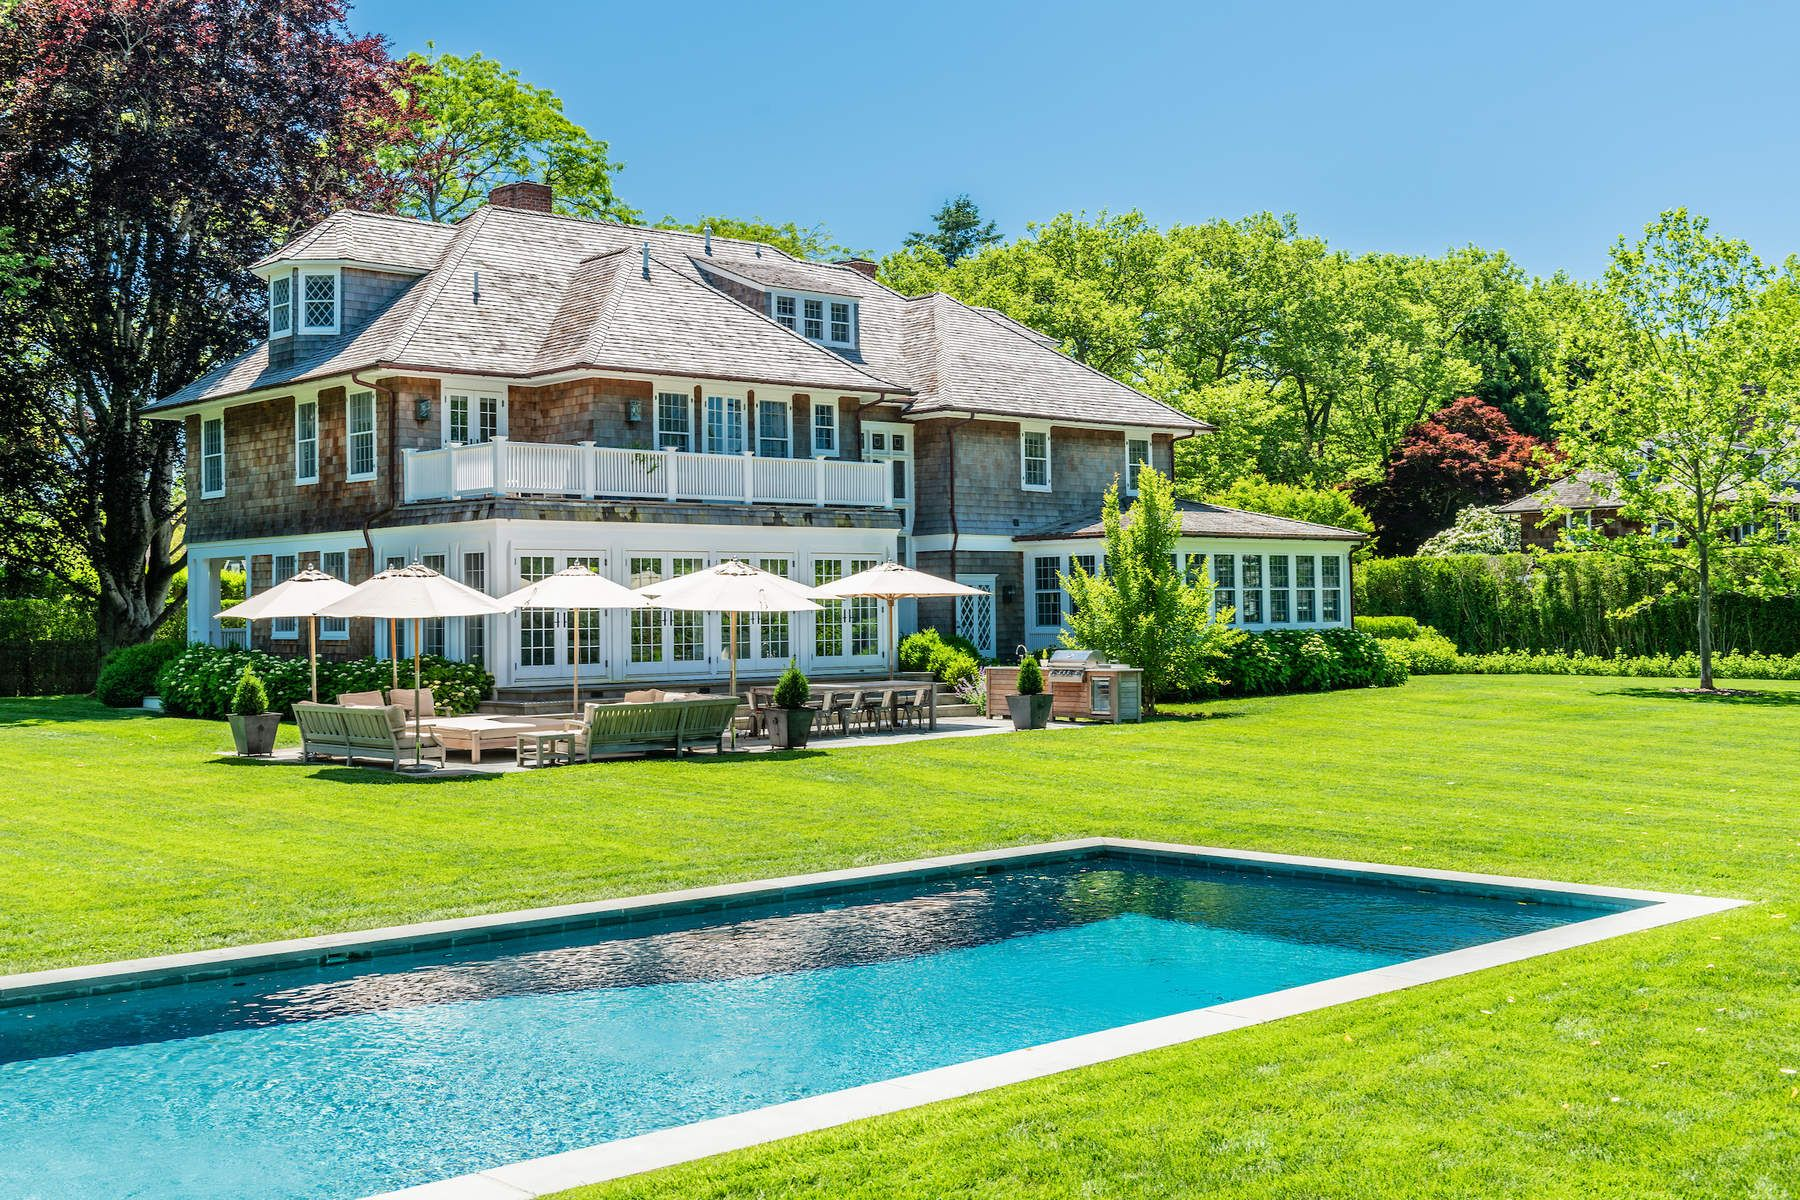 Single Family Home for Active at Stylishly Updated East Hampton Estate 62 Dunemere Lane East Hampton, New York 11937 United States